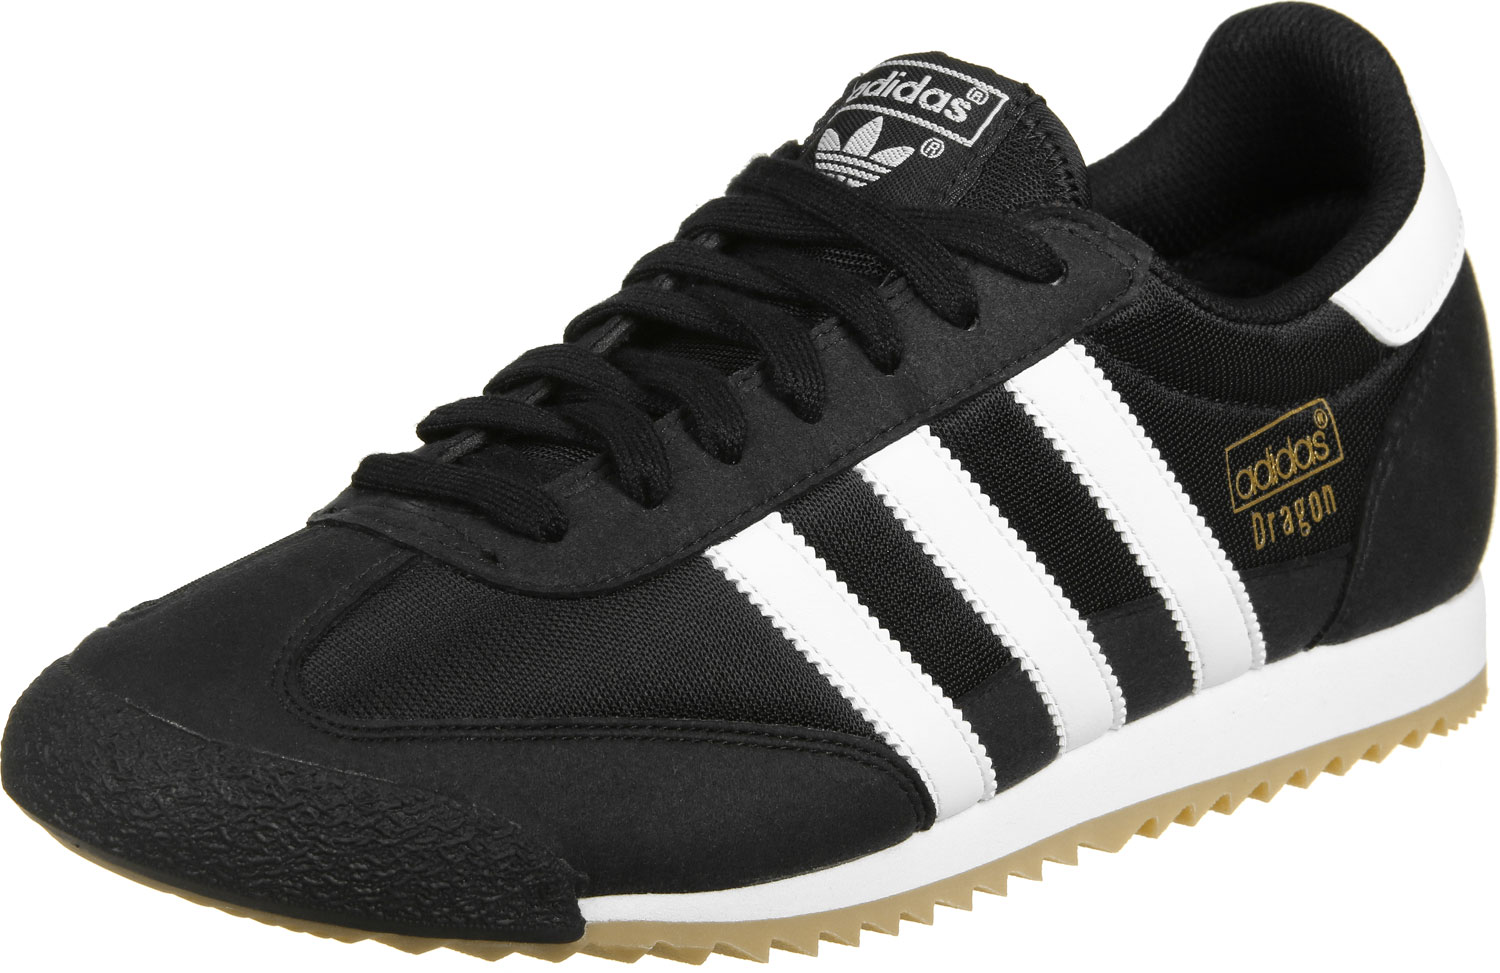 adidas dragon shoes adidas dragon og shoes black white OSGPQRM